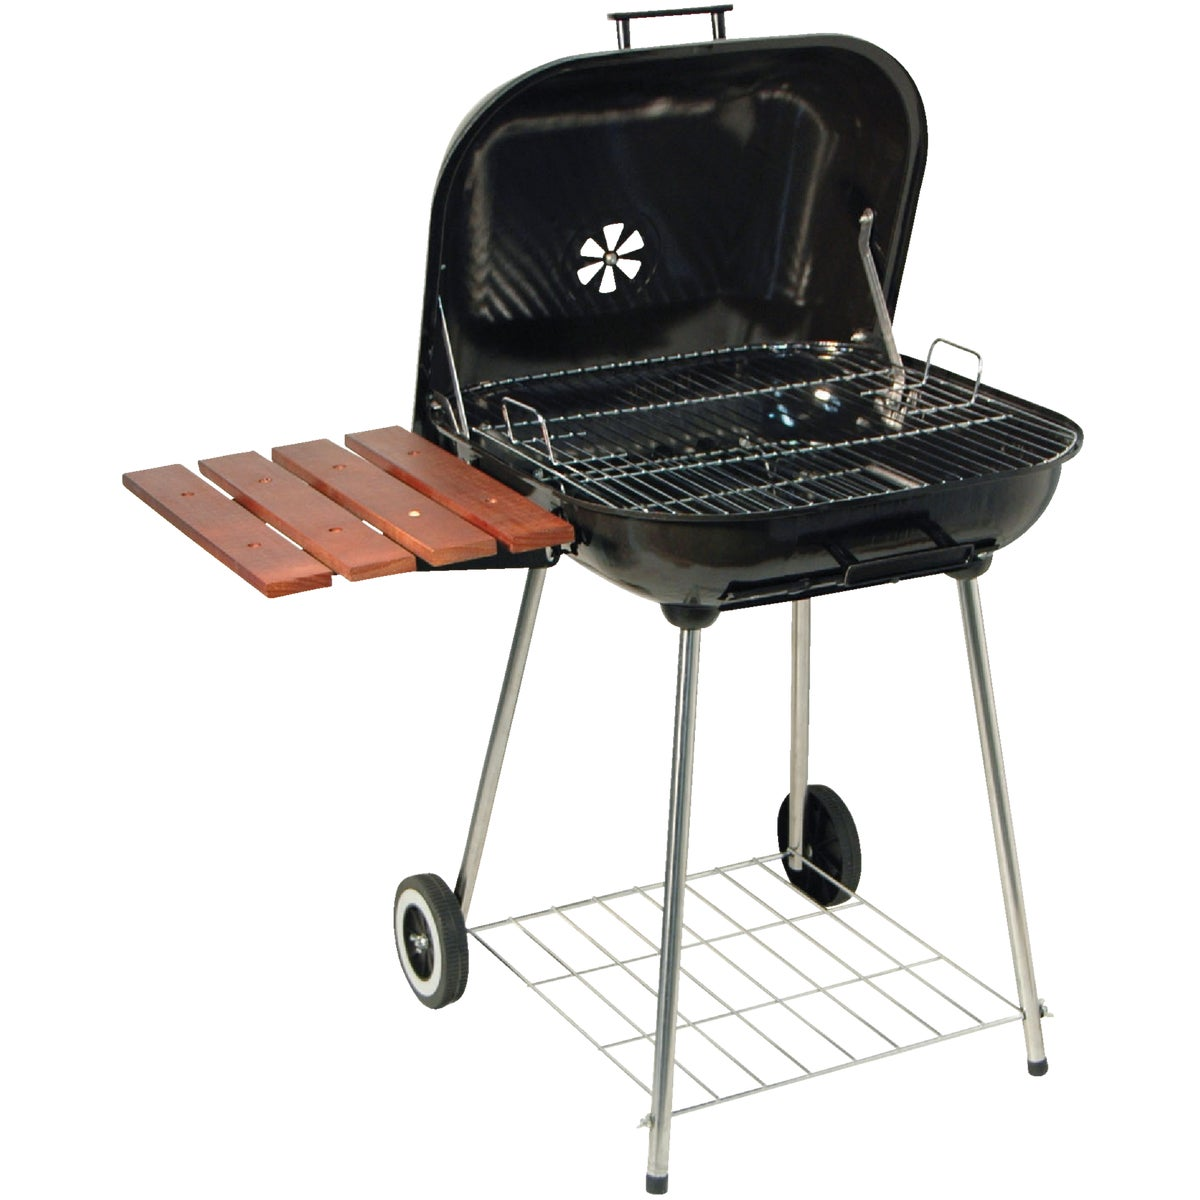 CHARCOAL SMOKER GRILL - 18623DI by Kay Home Prods